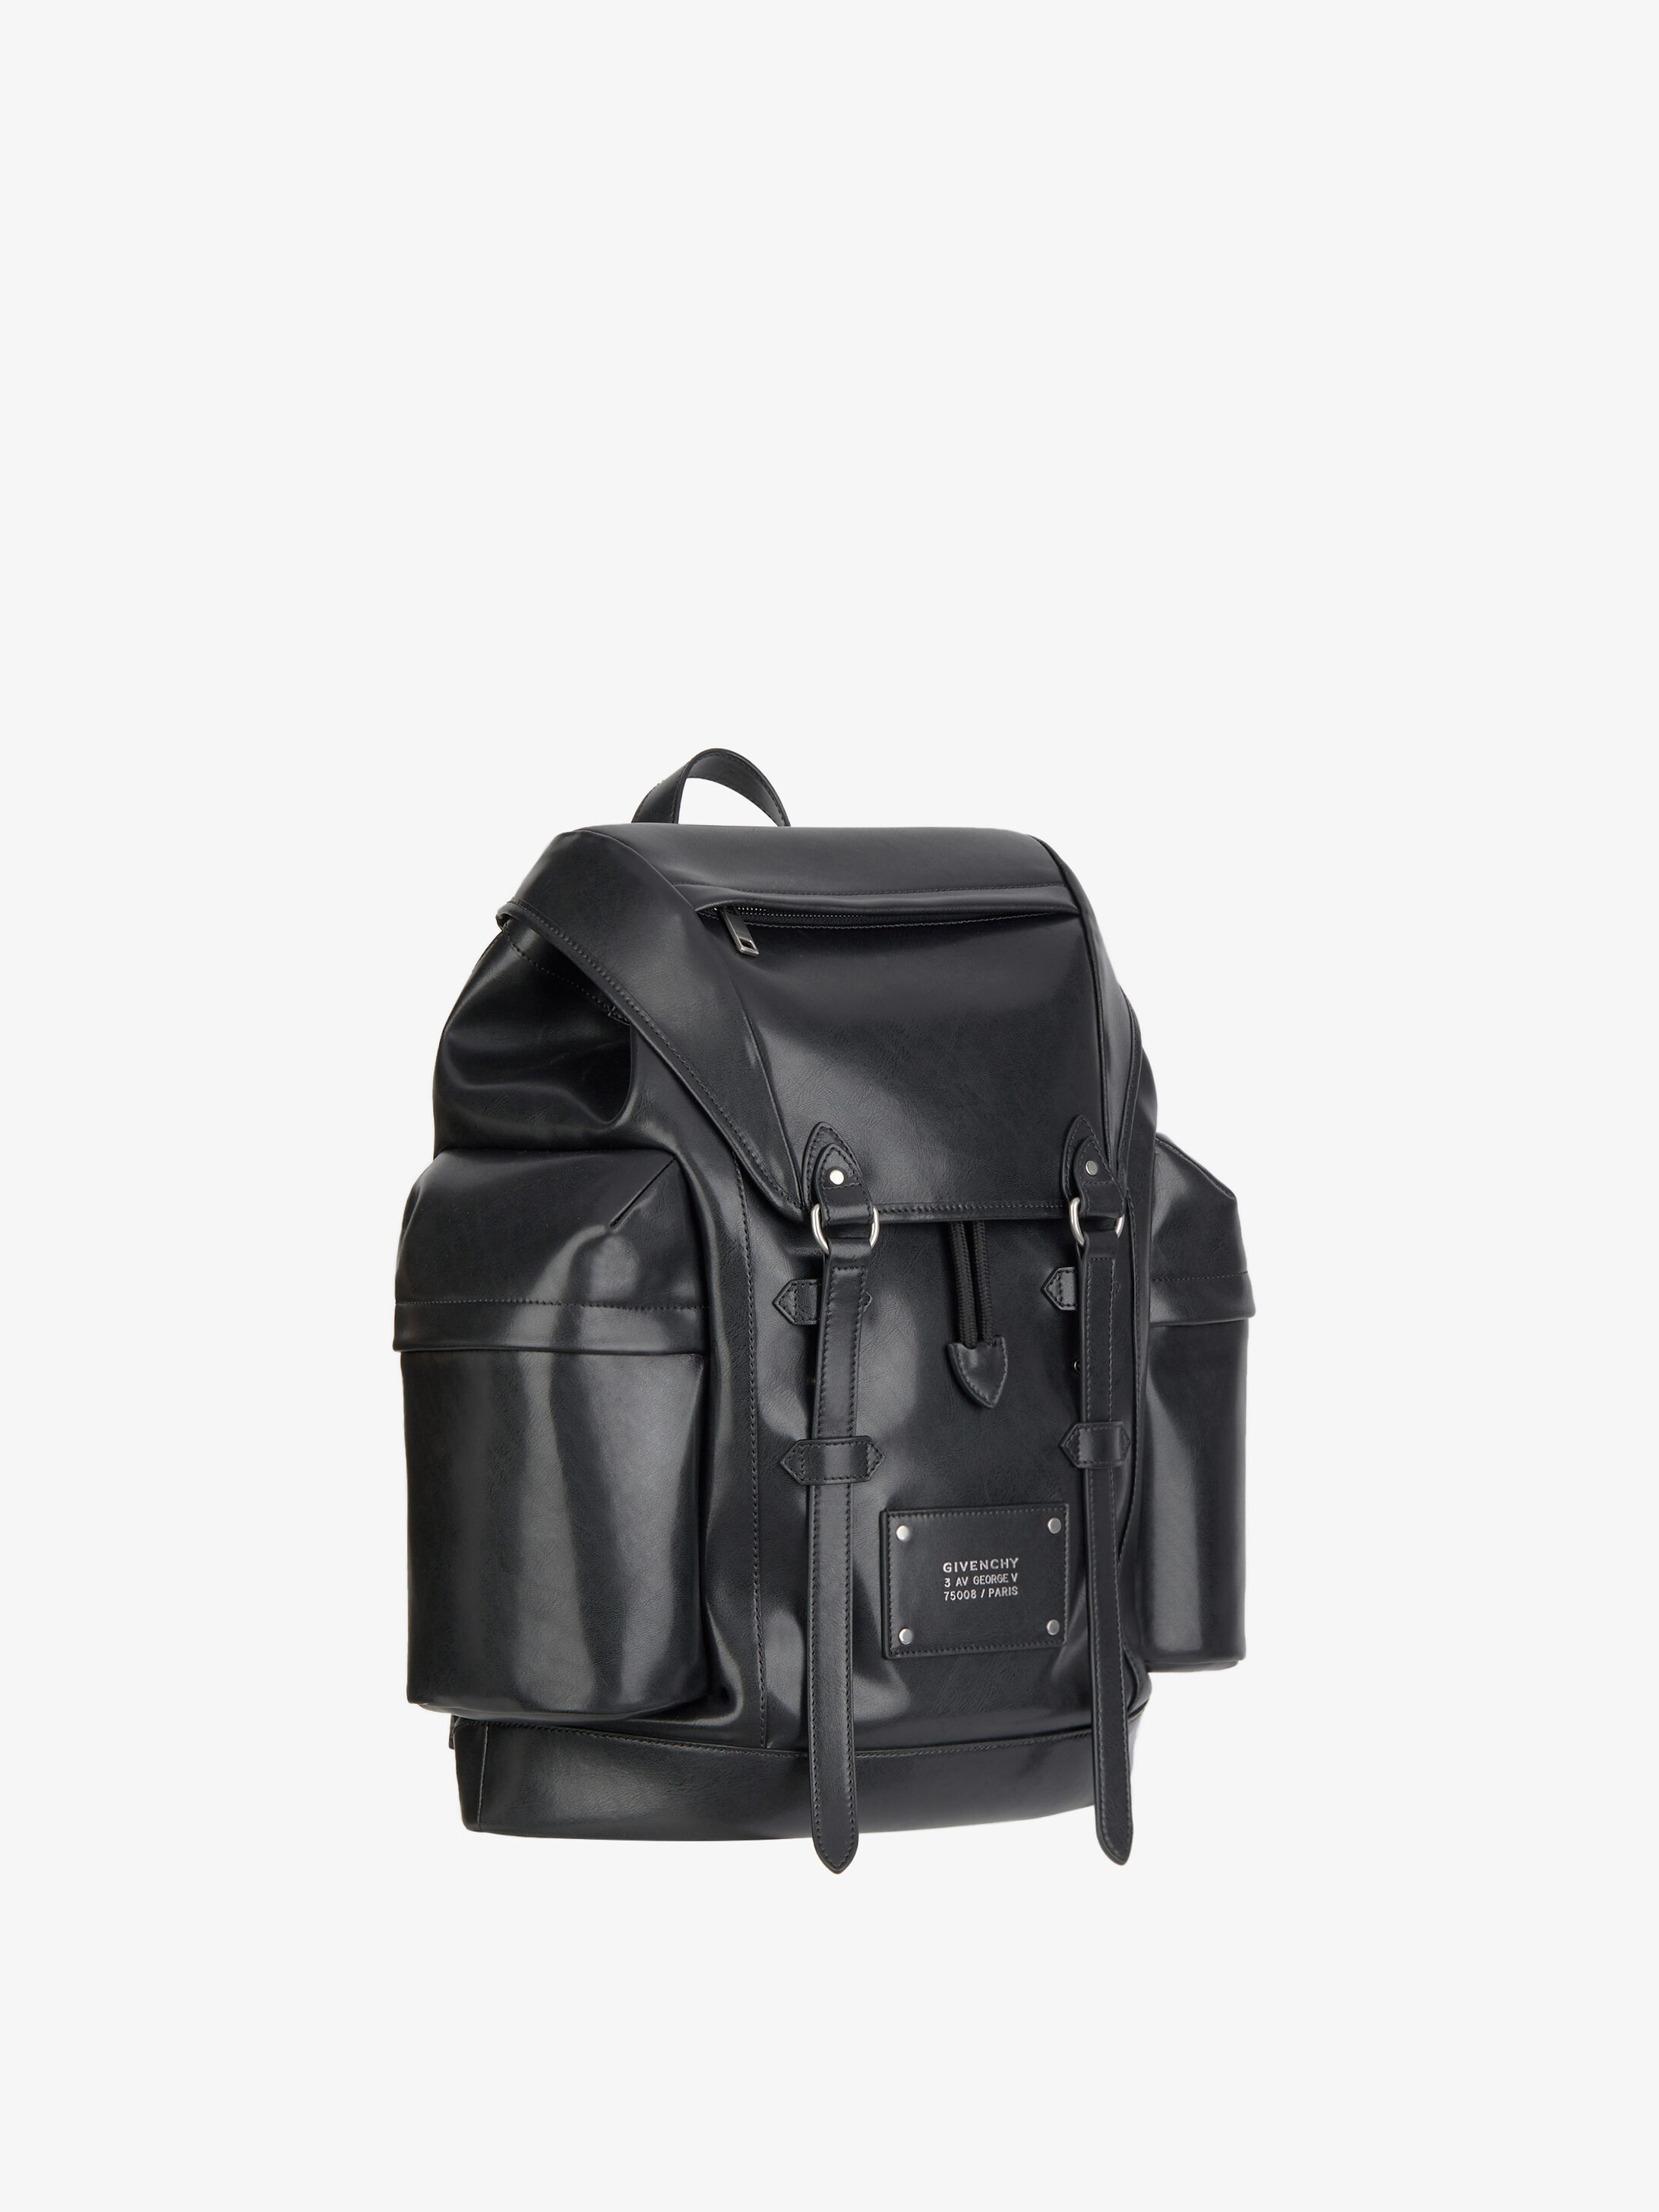 2de721bf34 Men's Backpacks collection by Givenchy. | GIVENCHY Paris